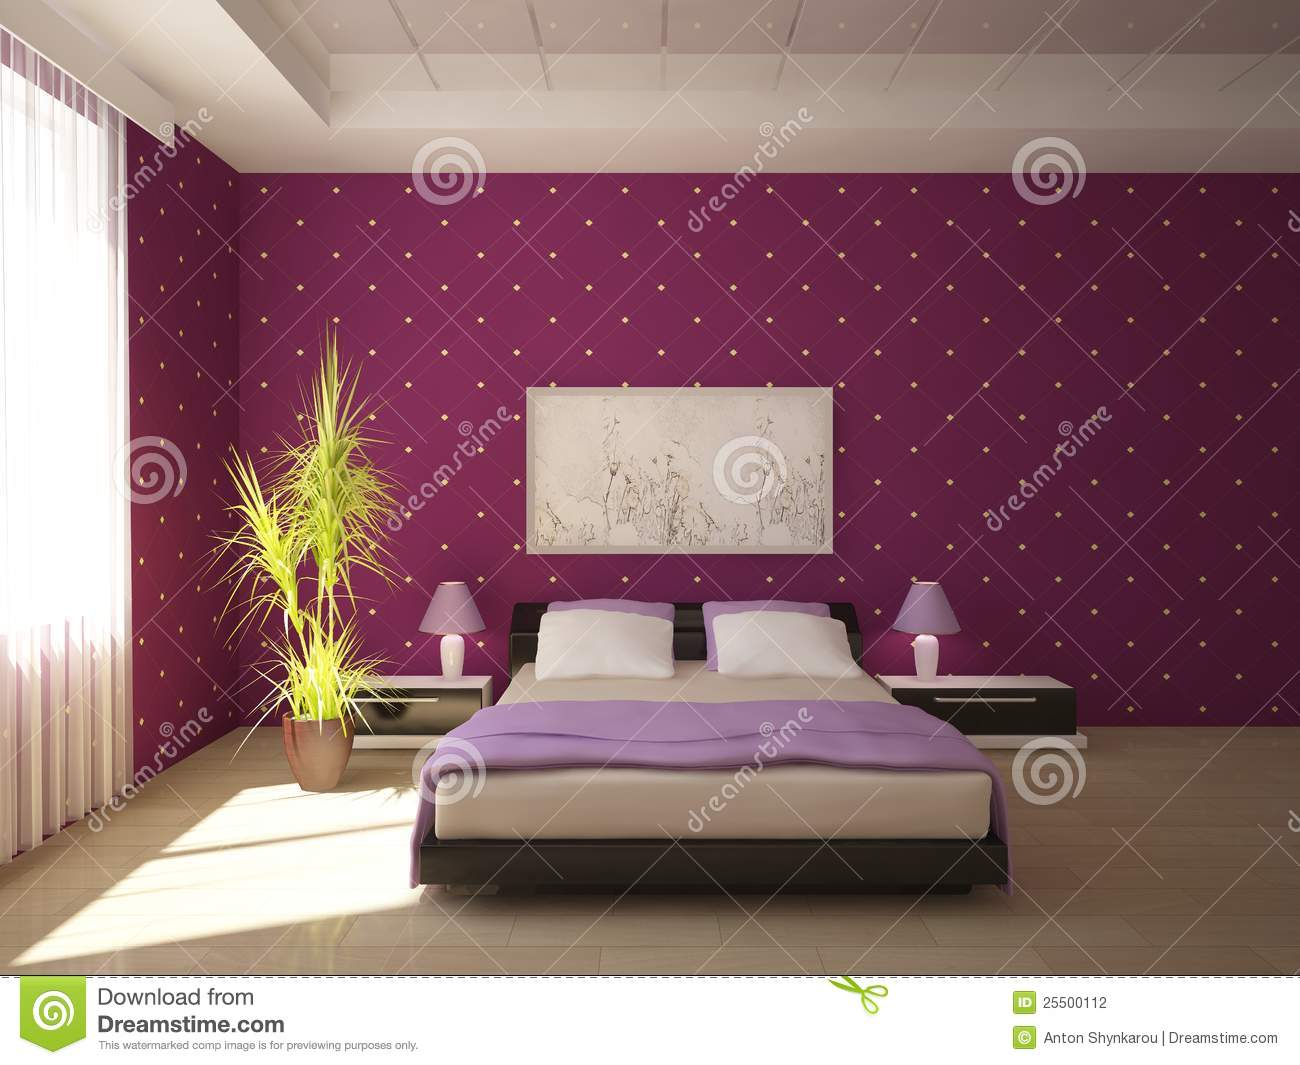 Conception color e de chambre coucher - Chambre coloree ...